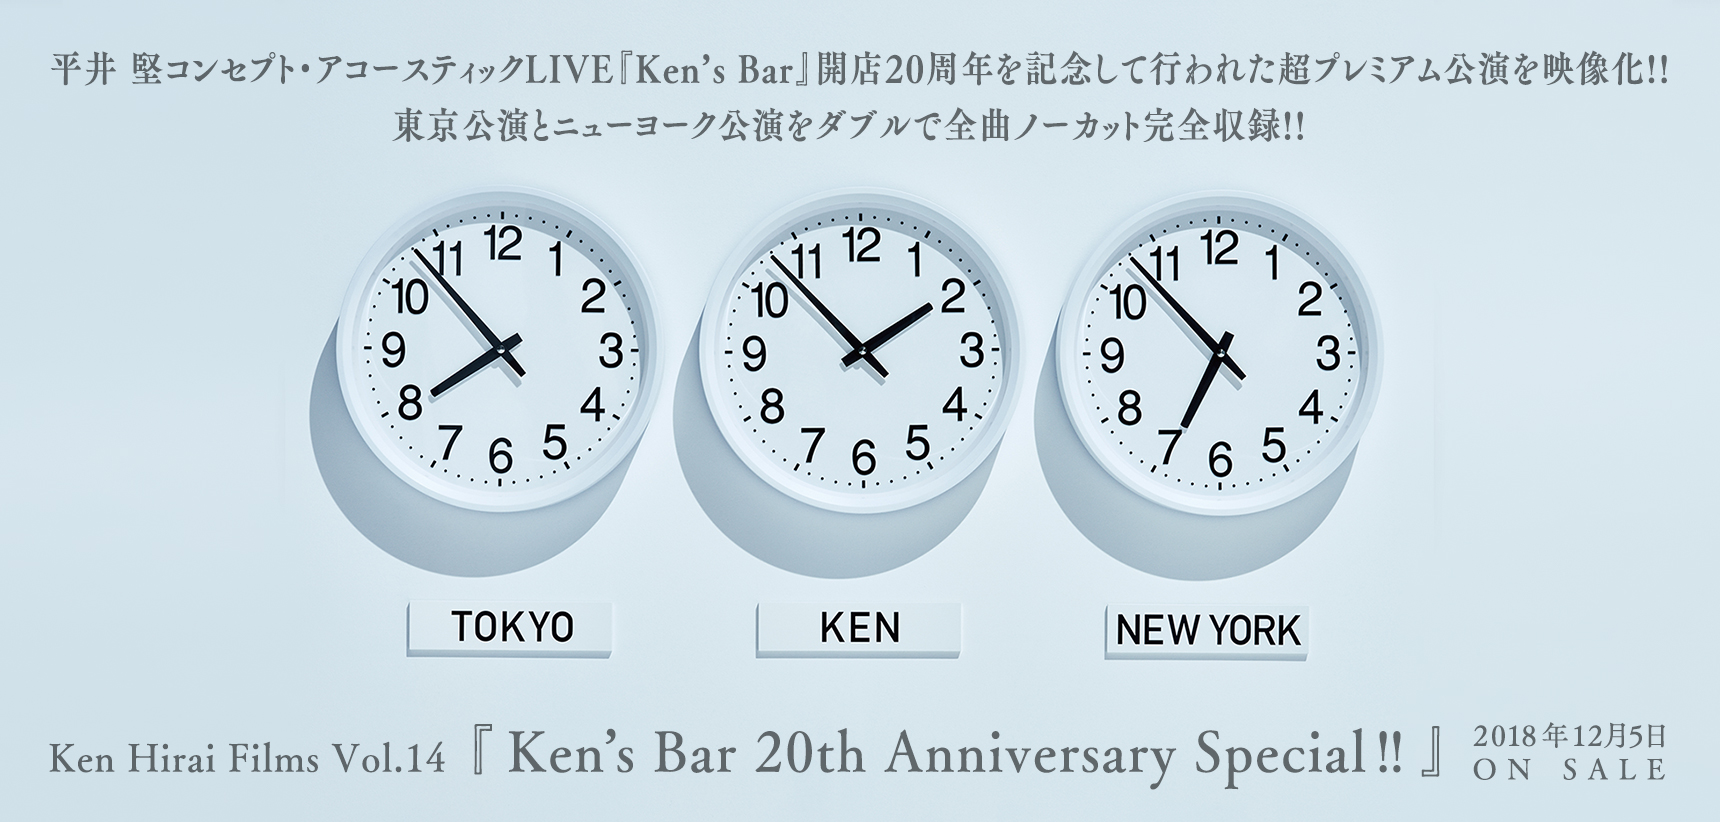 Ken Hirai Films Vol.14 『Ken's Bar 20th Anniversary Special !!』2018年12月5日発売決定!!!